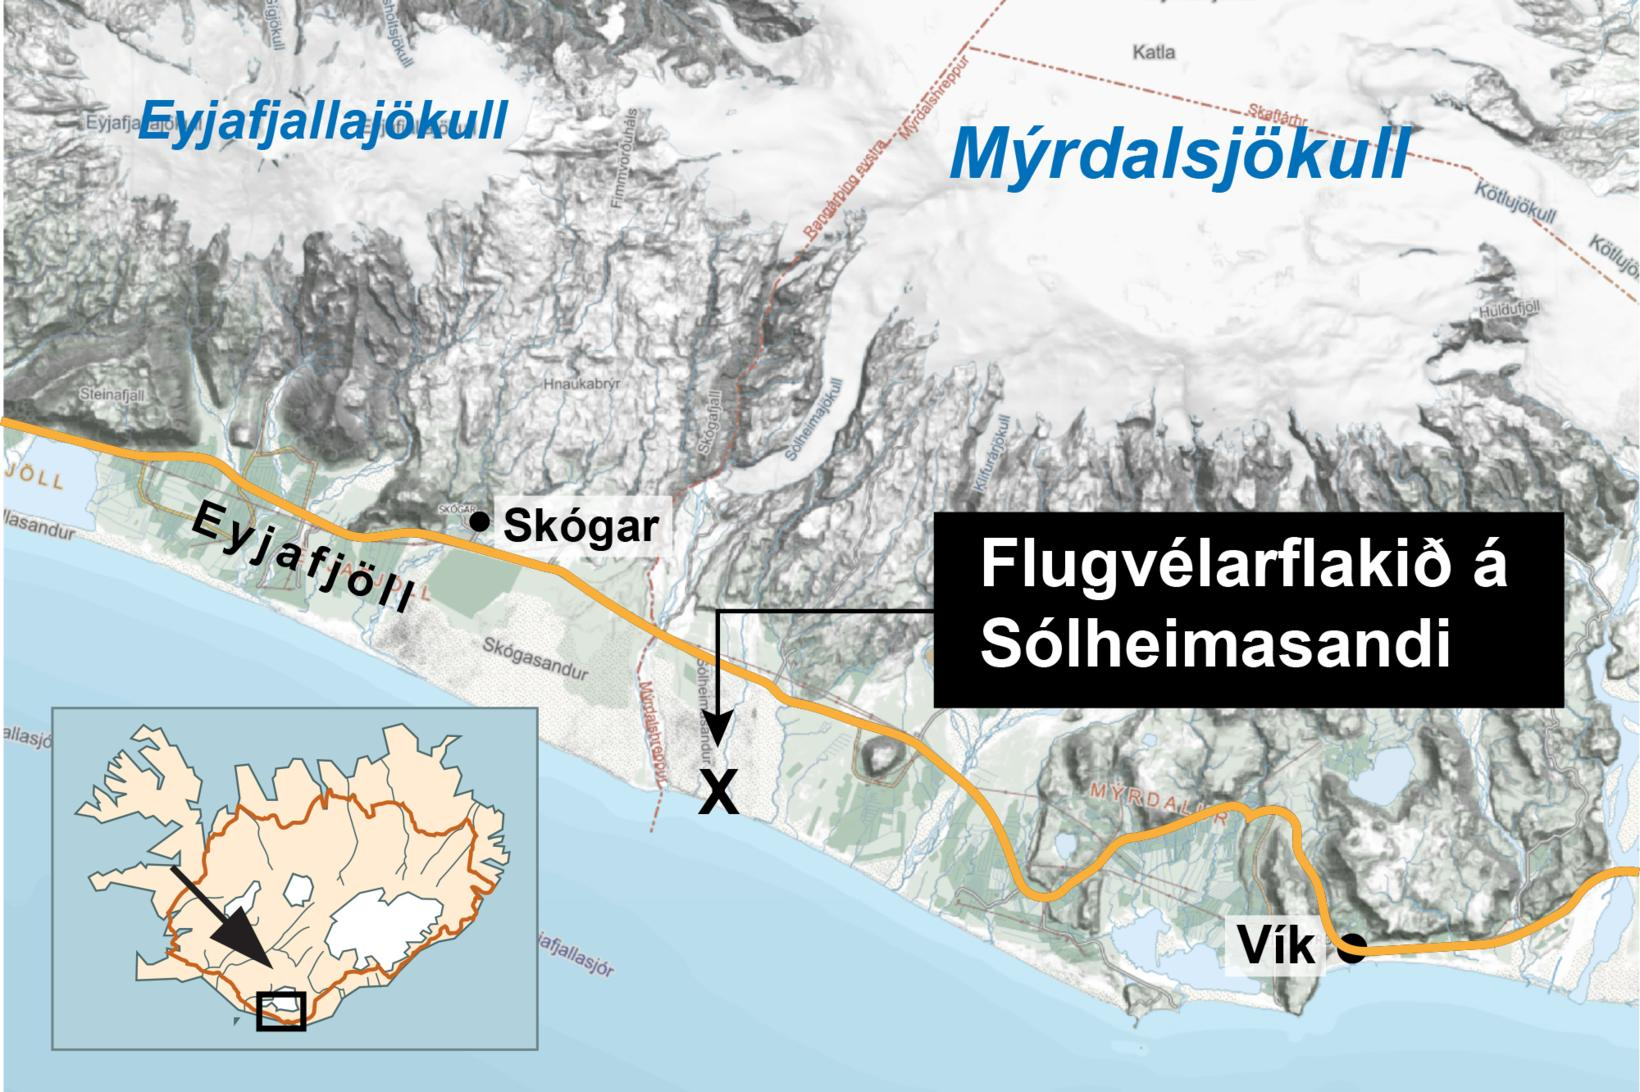 The map shows where the bodies were discovered.